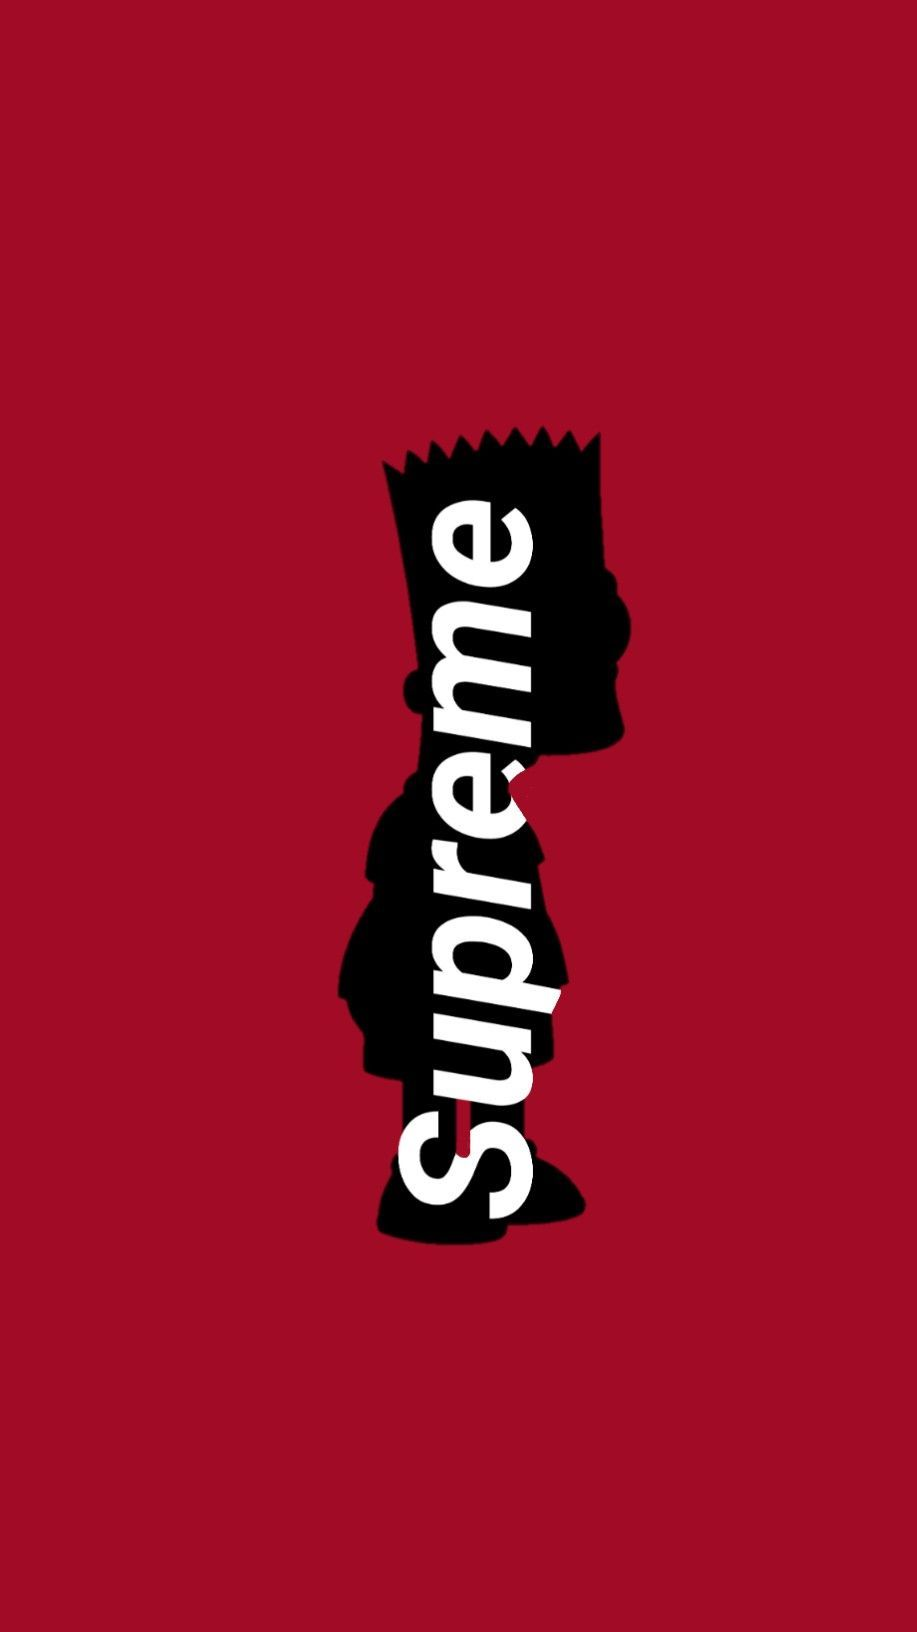 Supreme Gucci Wallpapers Wallpapersafari Supreme Iphone Wallpaper Supreme Wallpaper Hypebeast Wallpaper